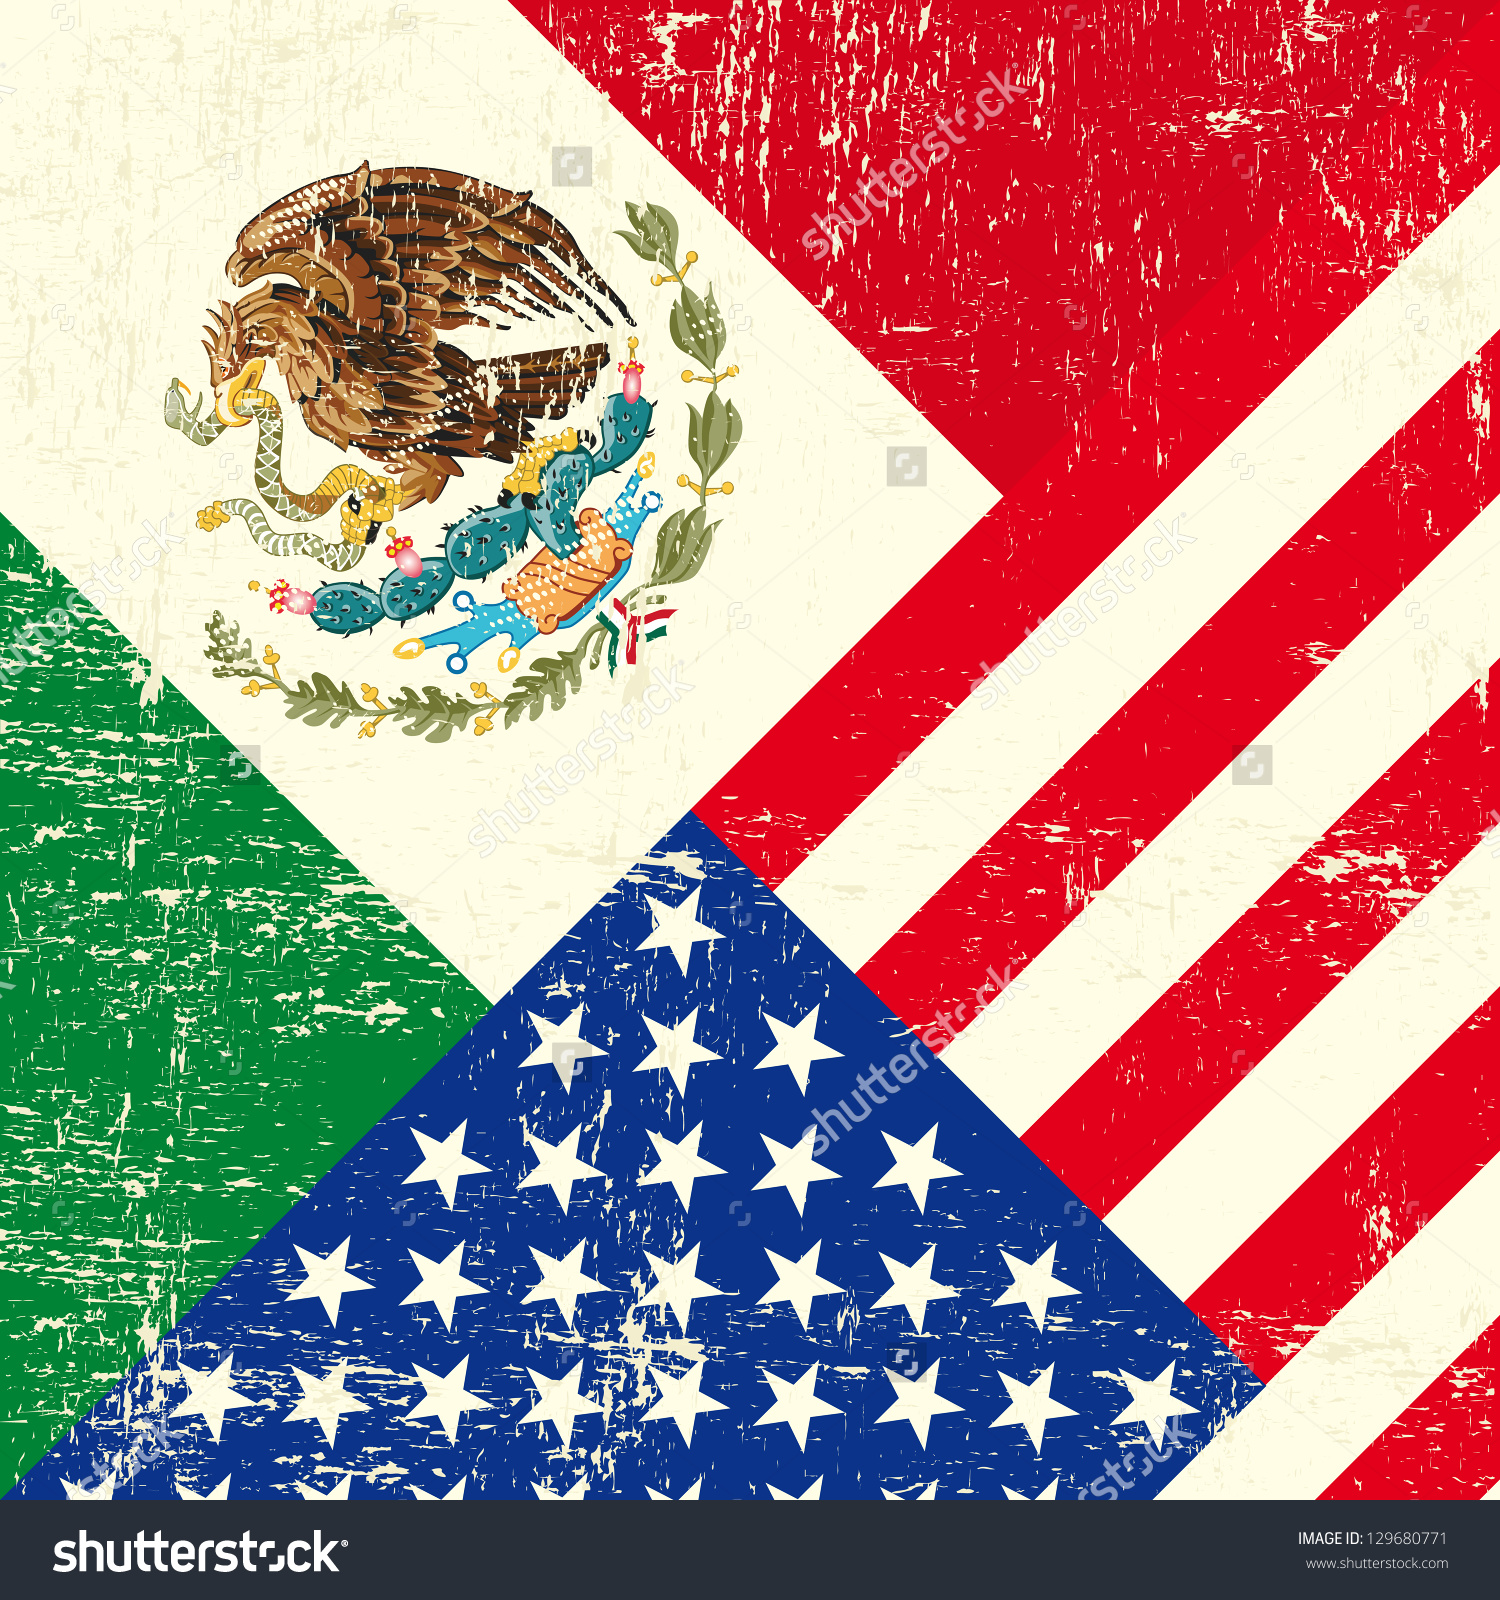 United states mexico flag clipart vector black and white Usa Mexican Grunge Flag Stock Vector 129680771 - Shutterstock vector black and white